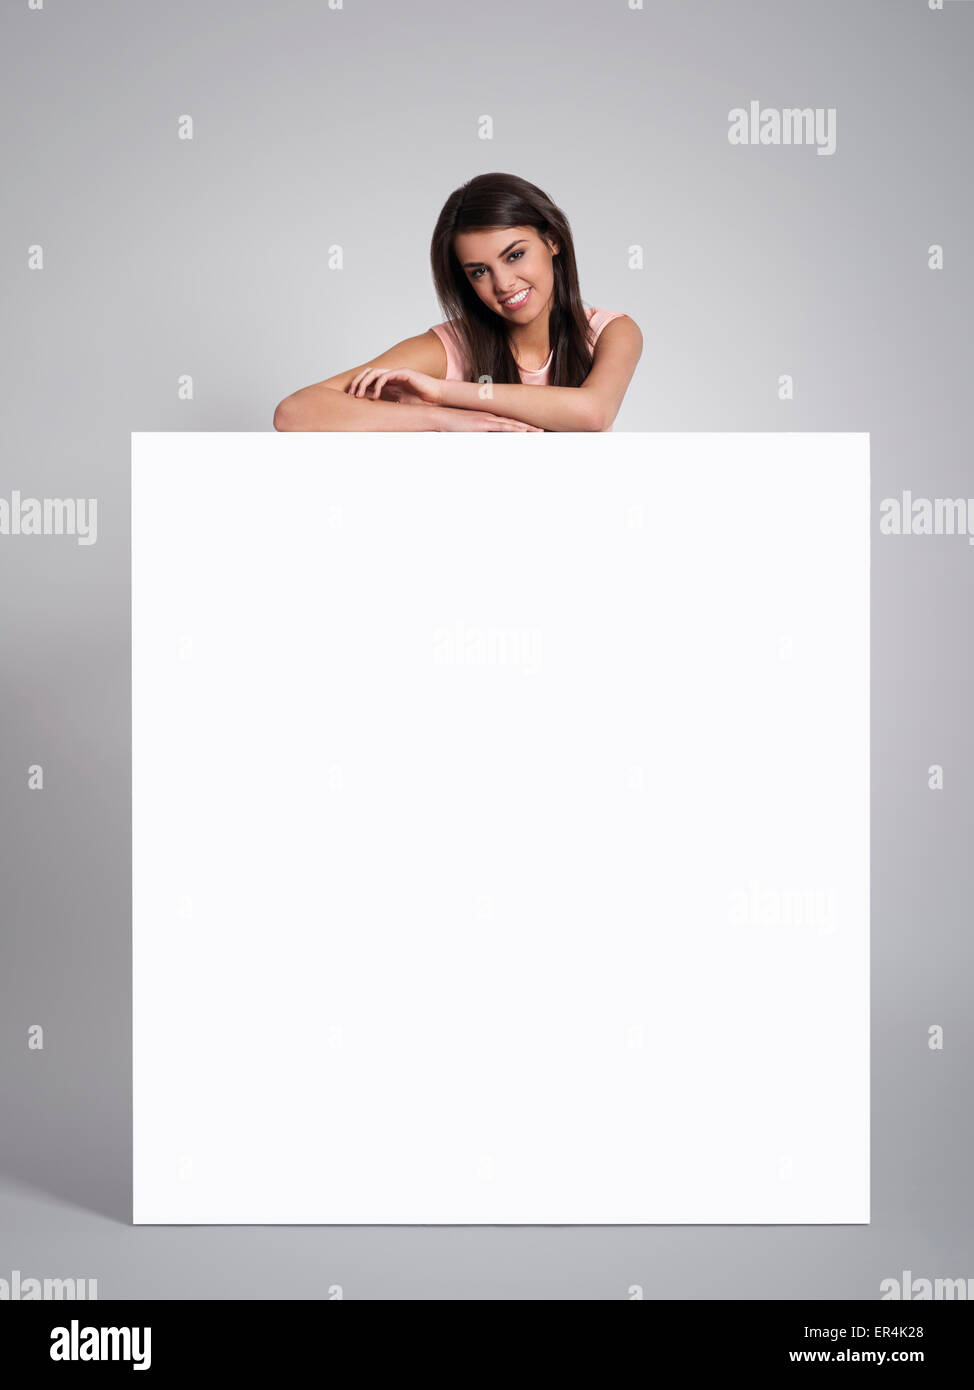 Smiling beautiful woman leaning on empty whiteboard. Debica, Poland - Stock Image